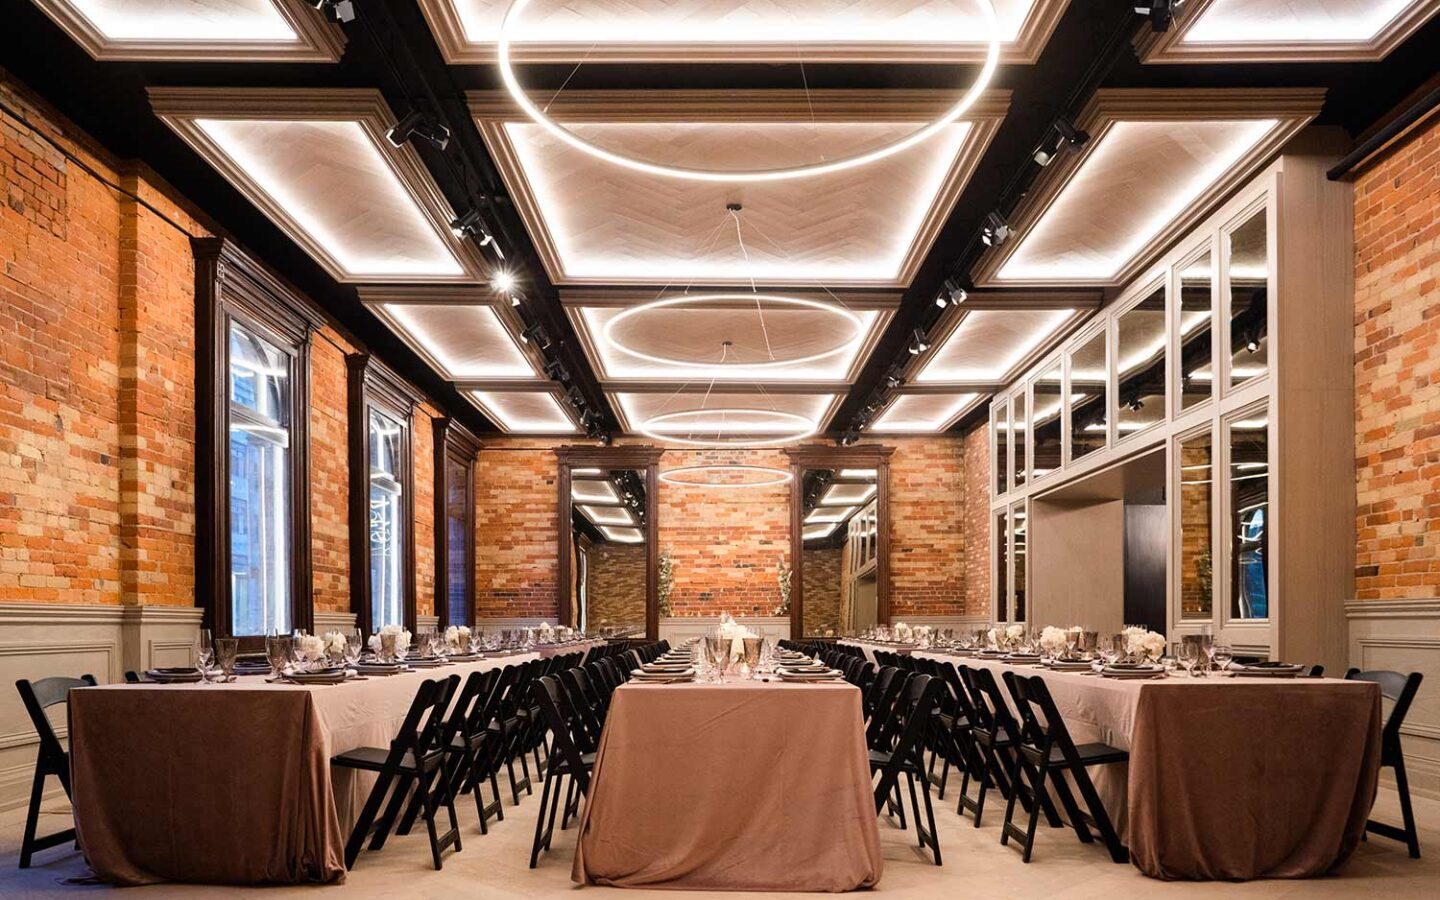 wedding venue with long rectangular tables and high brick walls with approximately 150 seats